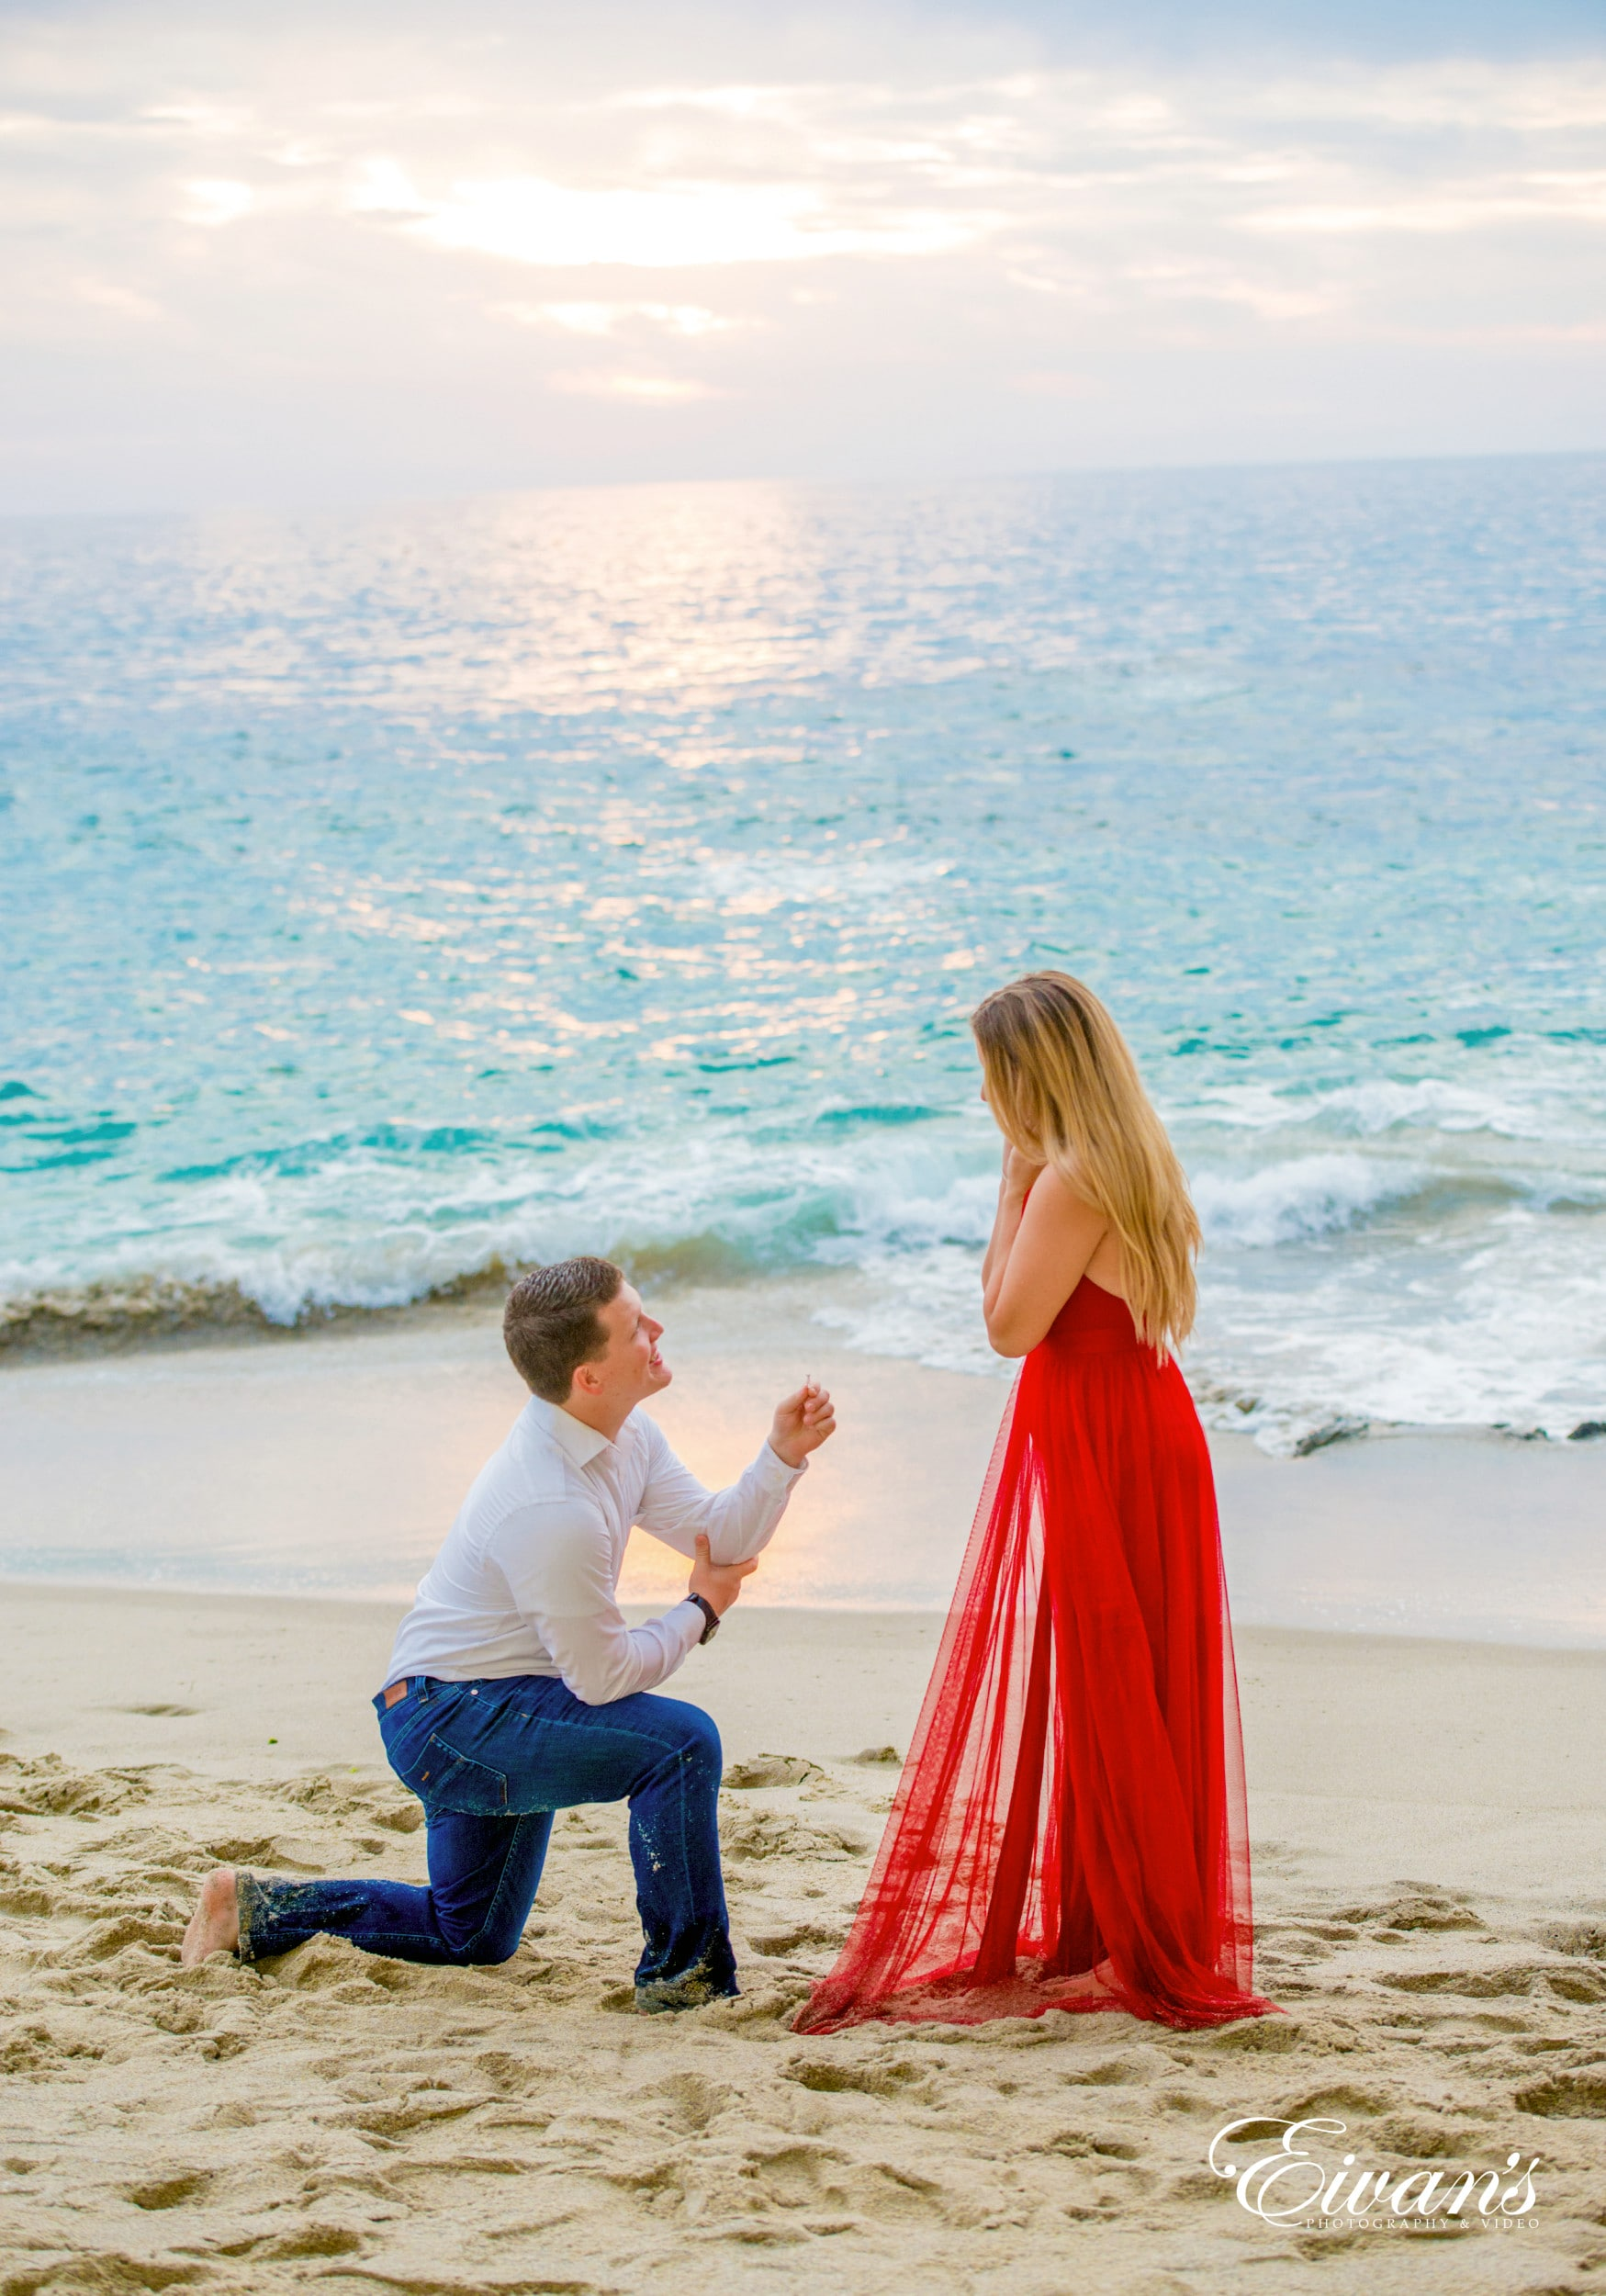 woman in red dress holding man in white dress shirt on beach during daytime